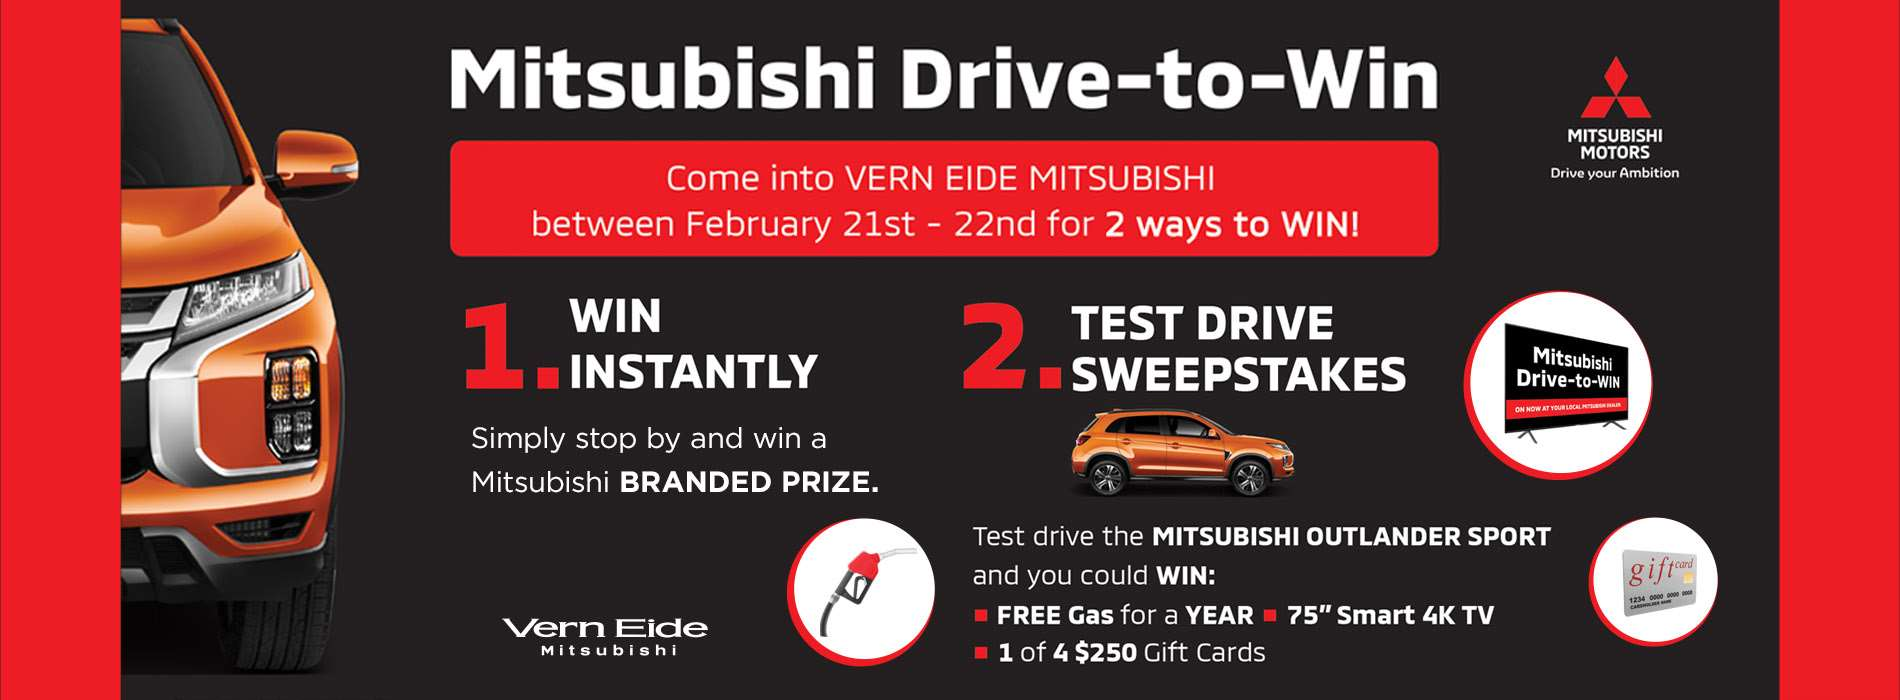 VMIT - Drive to Win - Feb 2020